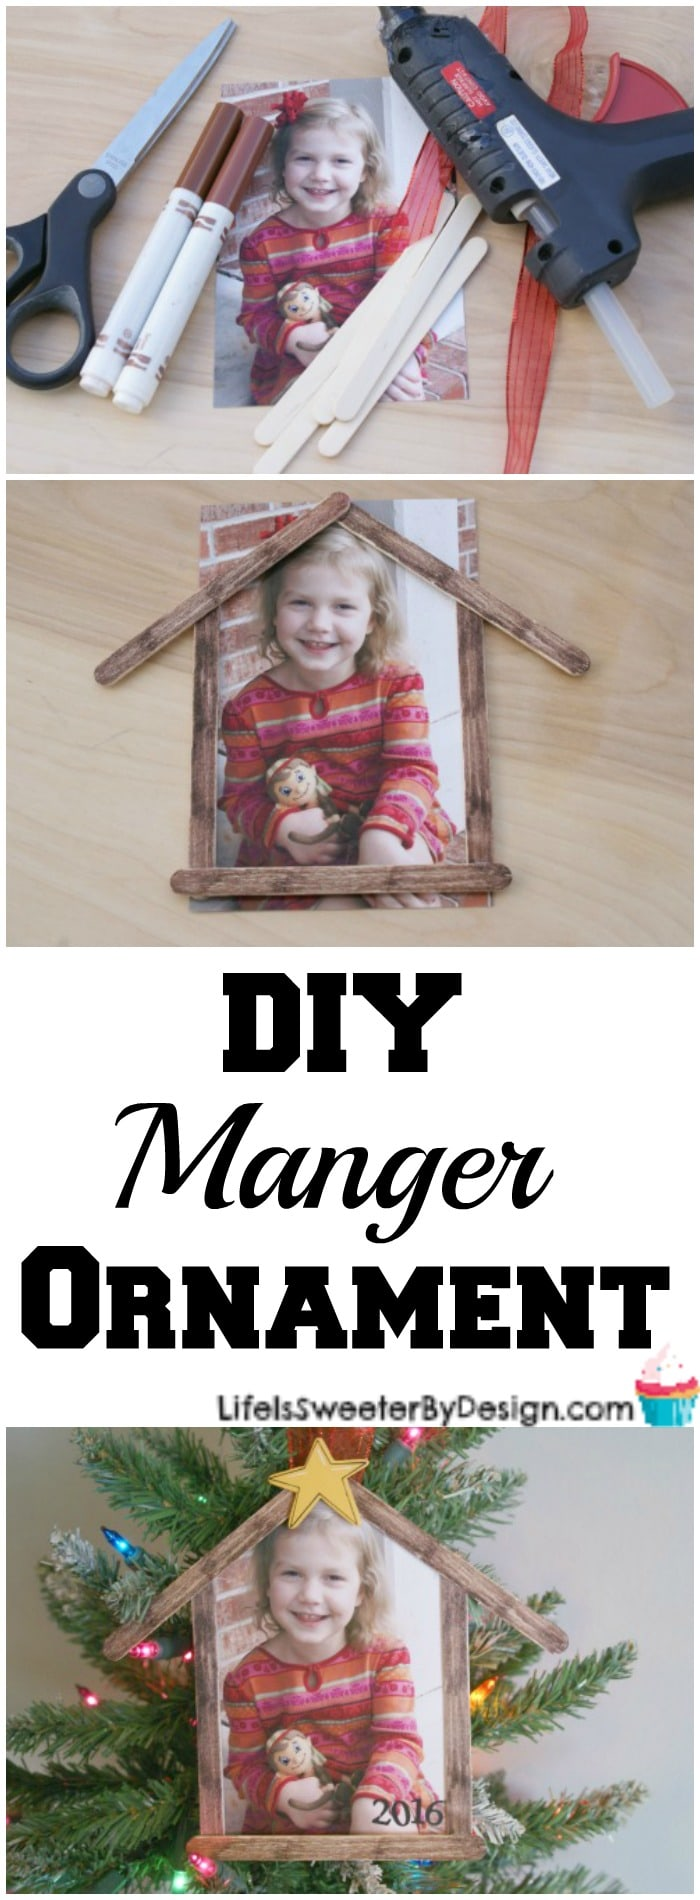 Make a Personalized DIY Manger Ornament for Christmas. This is an easy kid friendly ornament!